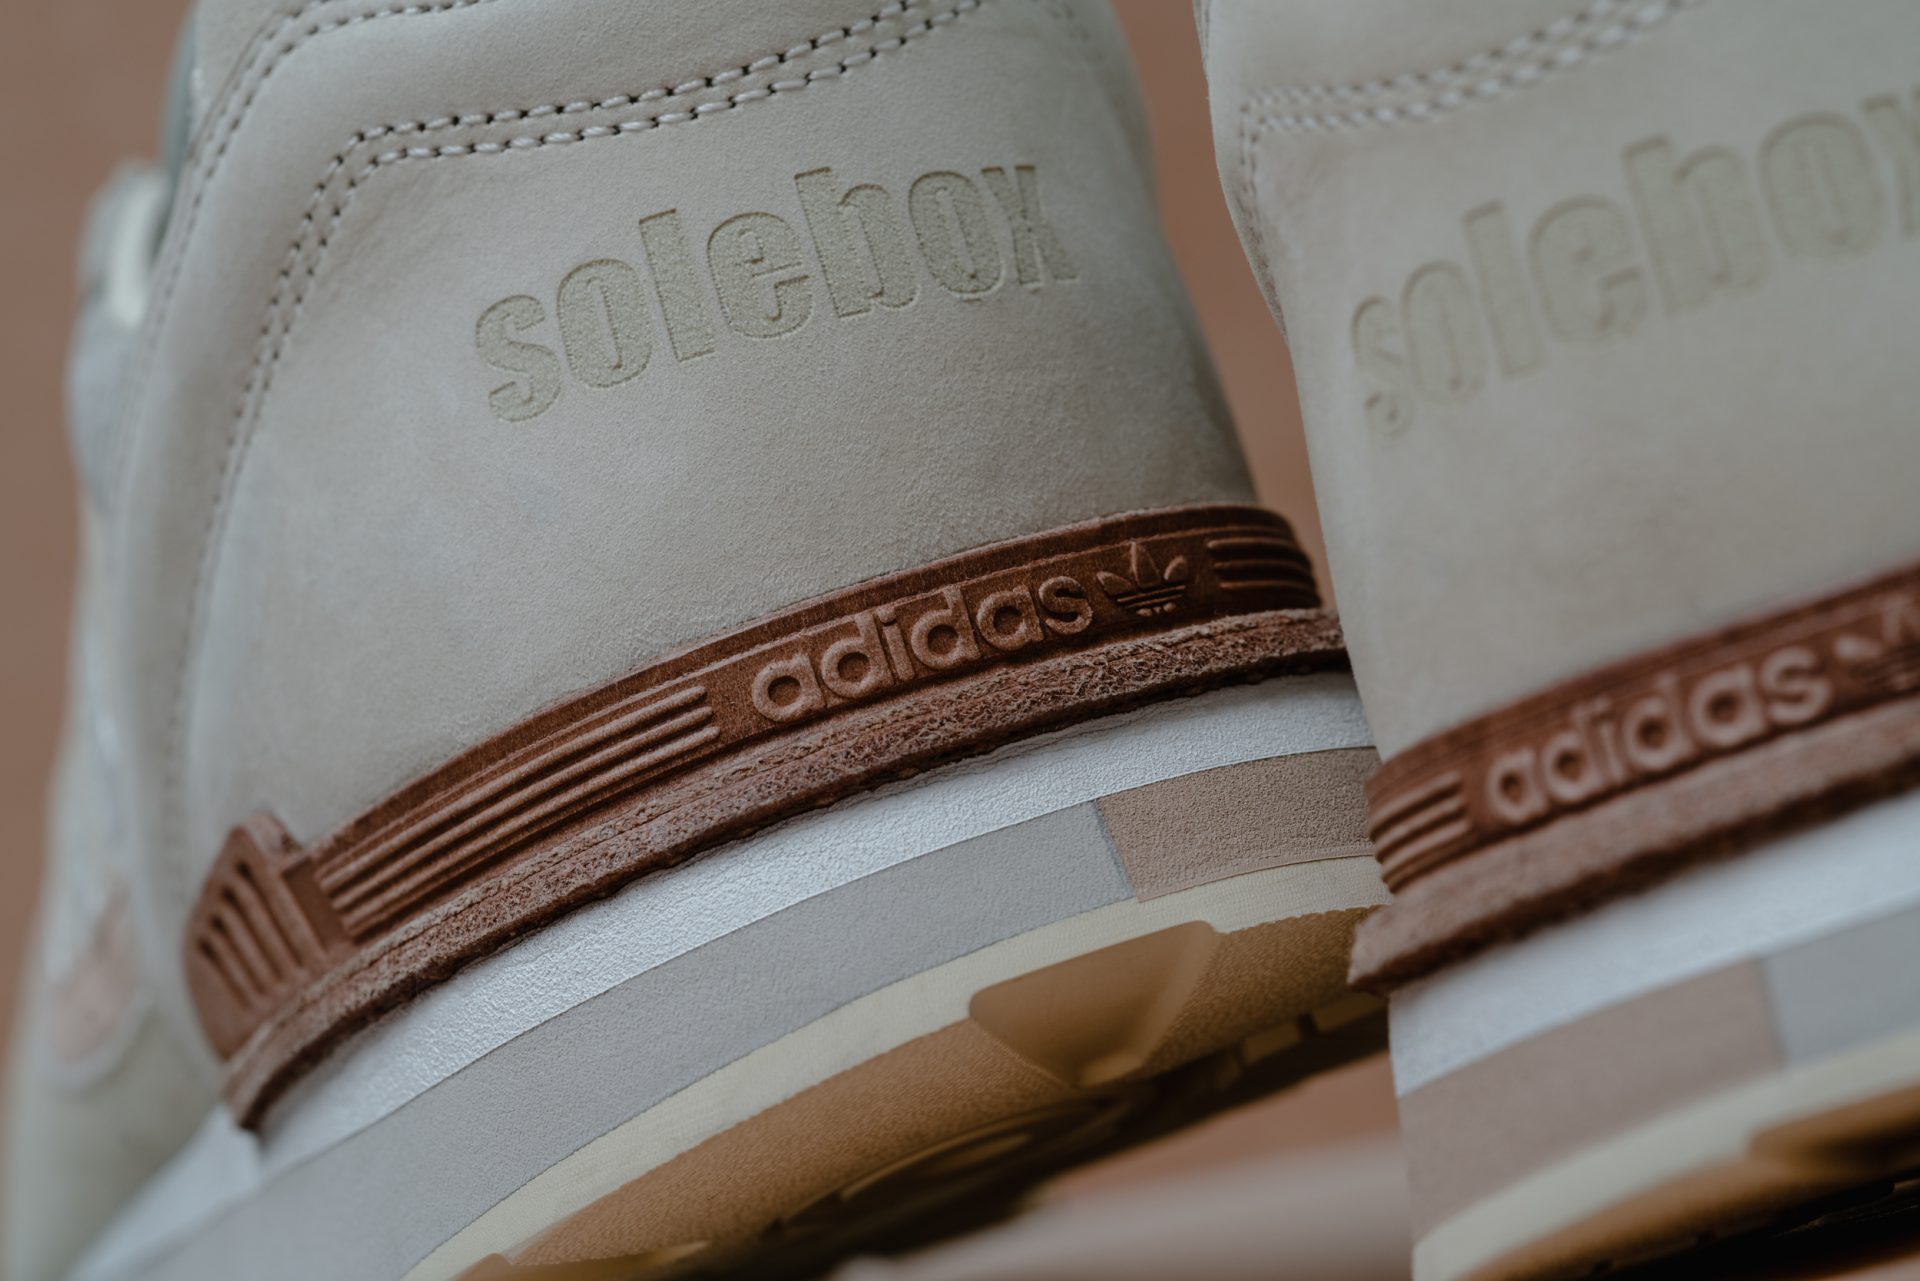 Solebox x adidas Quesence : Release Date | WAVE®